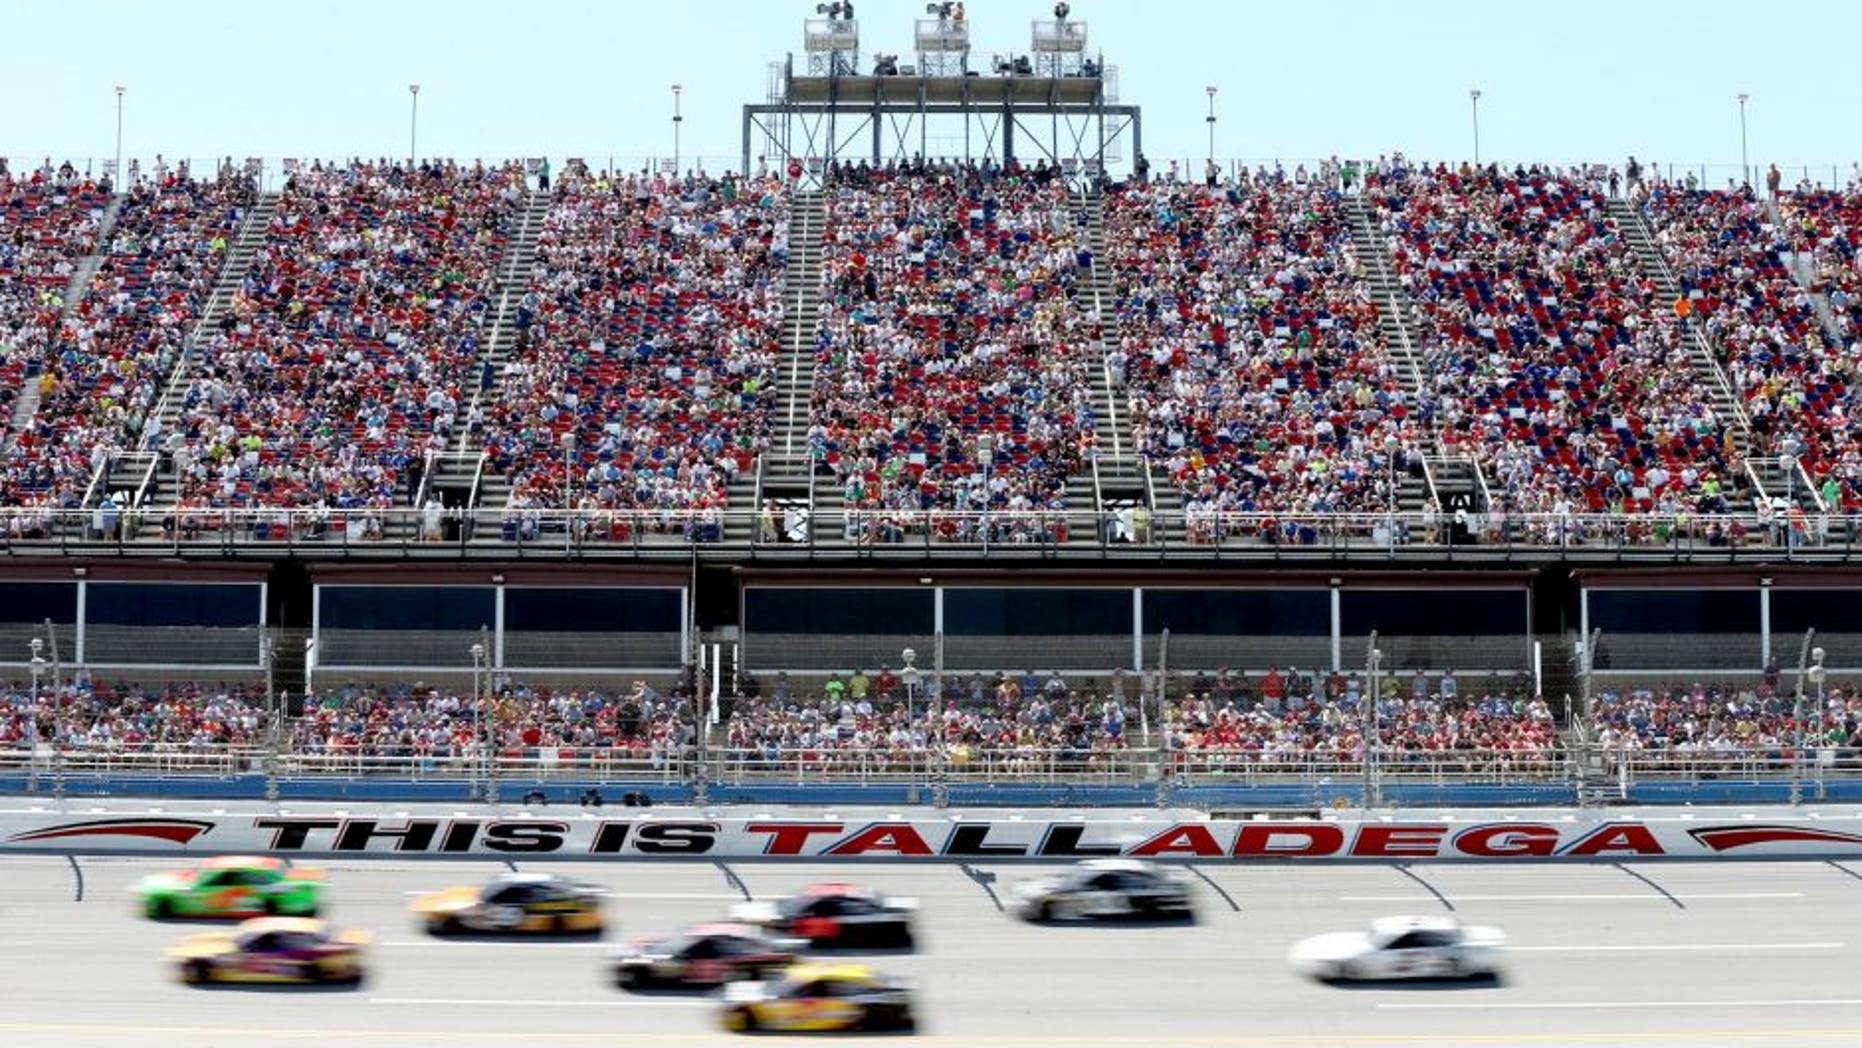 TALLADEGA, AL - MAY 04: Cars race during the NASCAR Sprint Cup Series Aaron's 499 at Talladega Superspeedway on May 4, 2014 in Talladega, Alabama. (Photo by Sean Gardner/Getty Images)